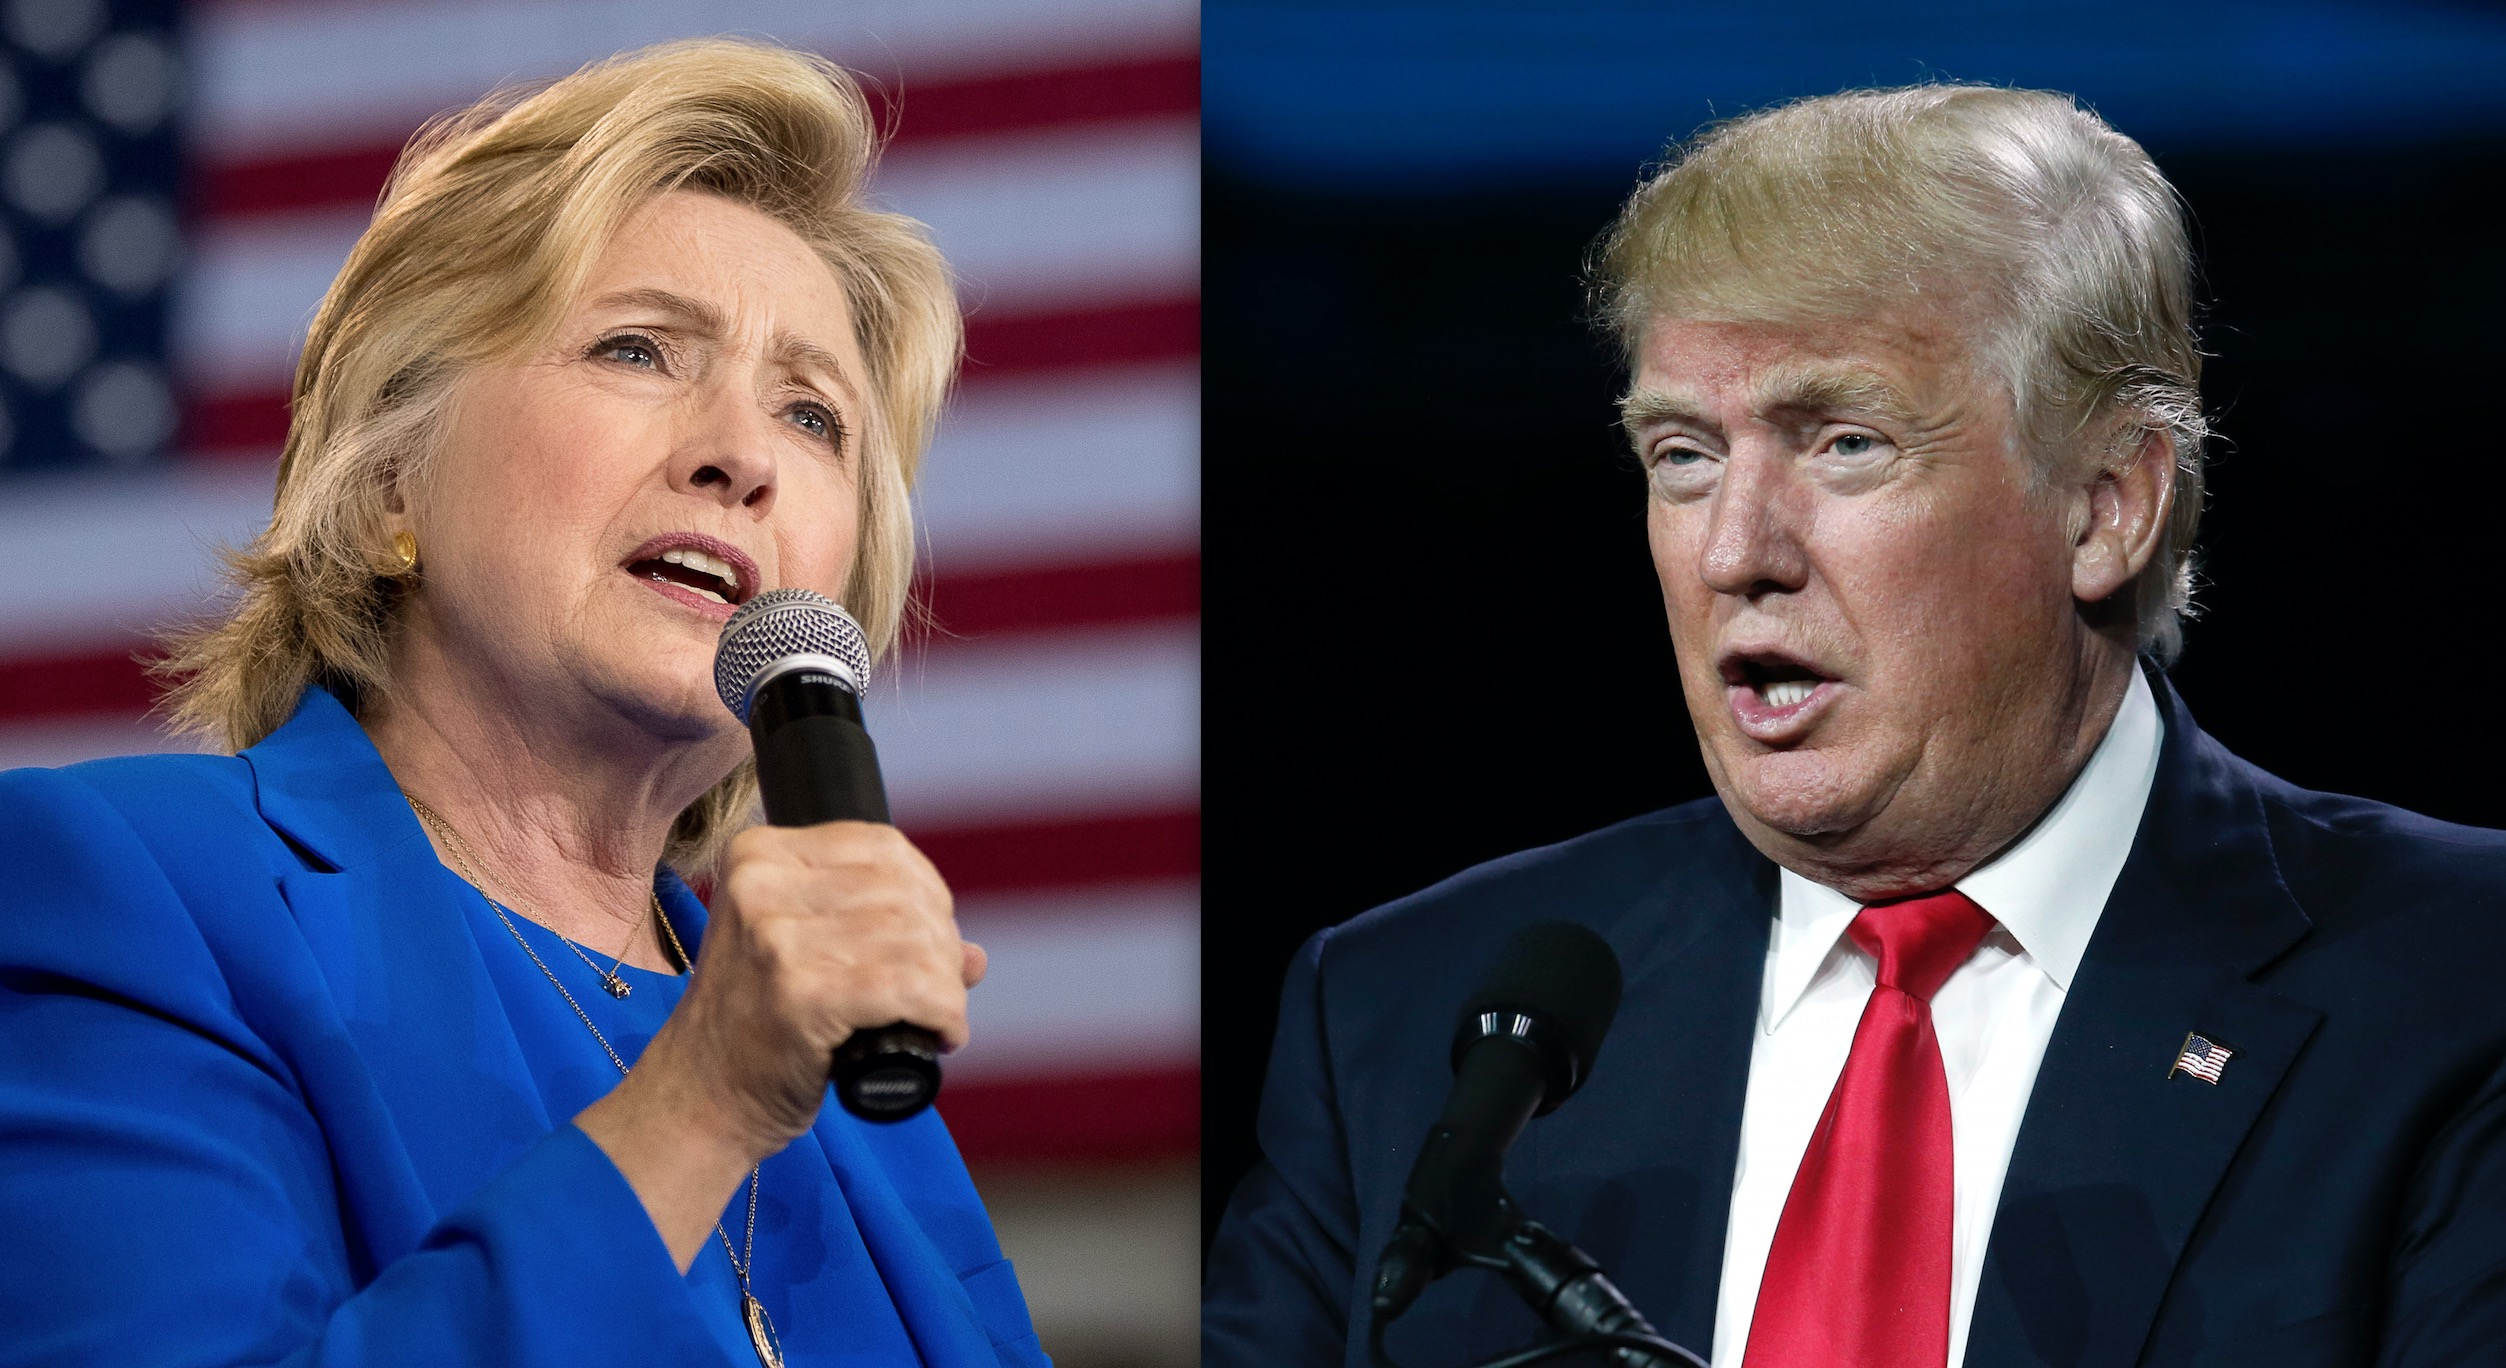 Poll Shows Small Post-Debate Bump for Clinton